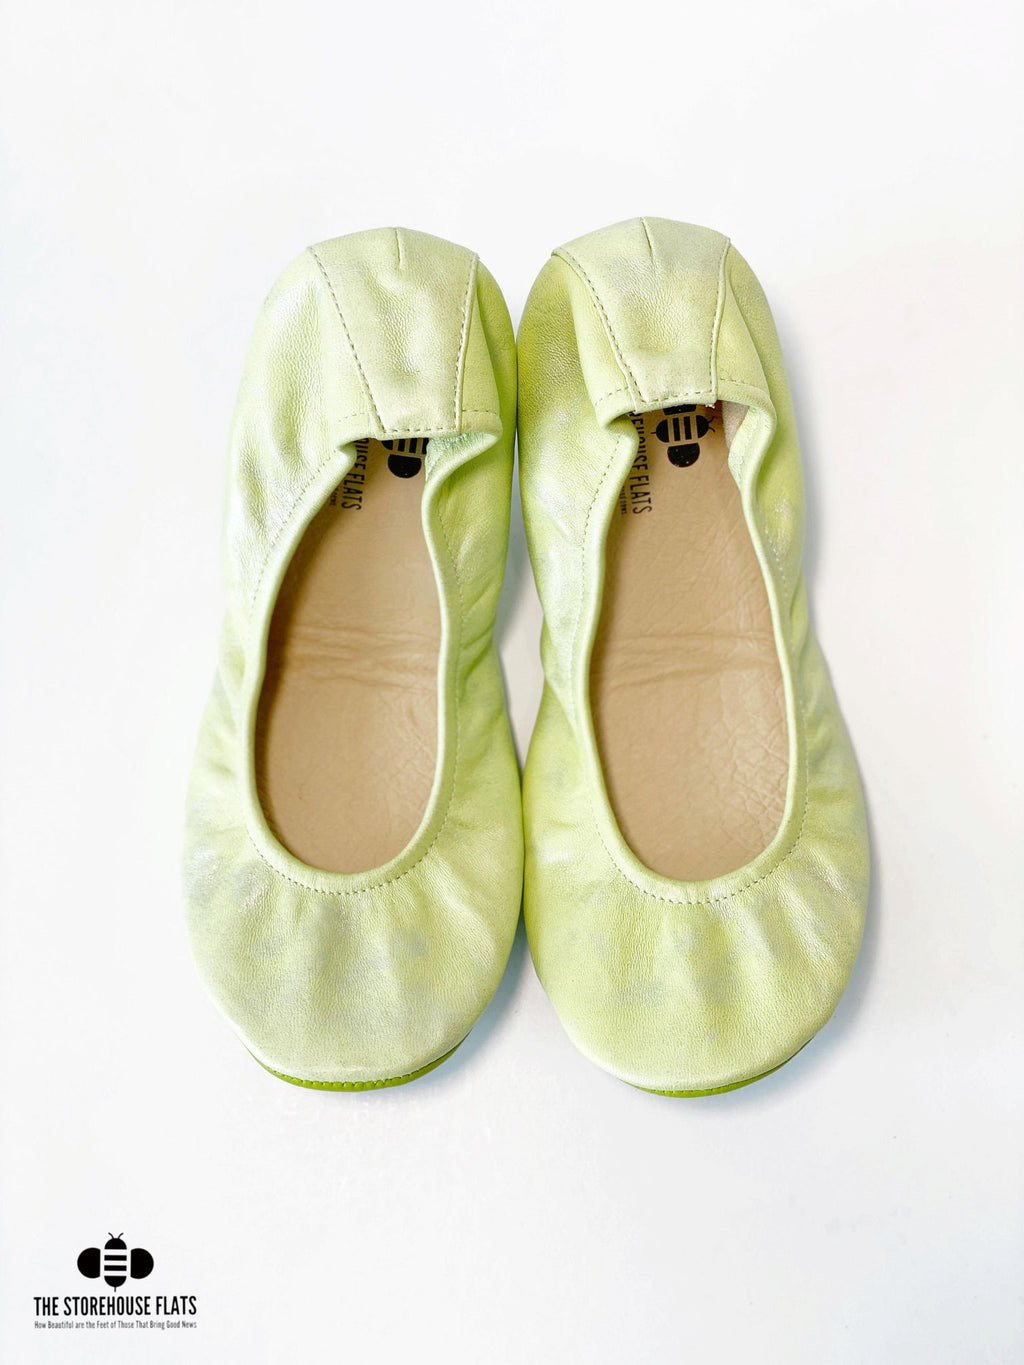 KEY LIME KISS | APRIL PREORDER - The Storehouse Flats